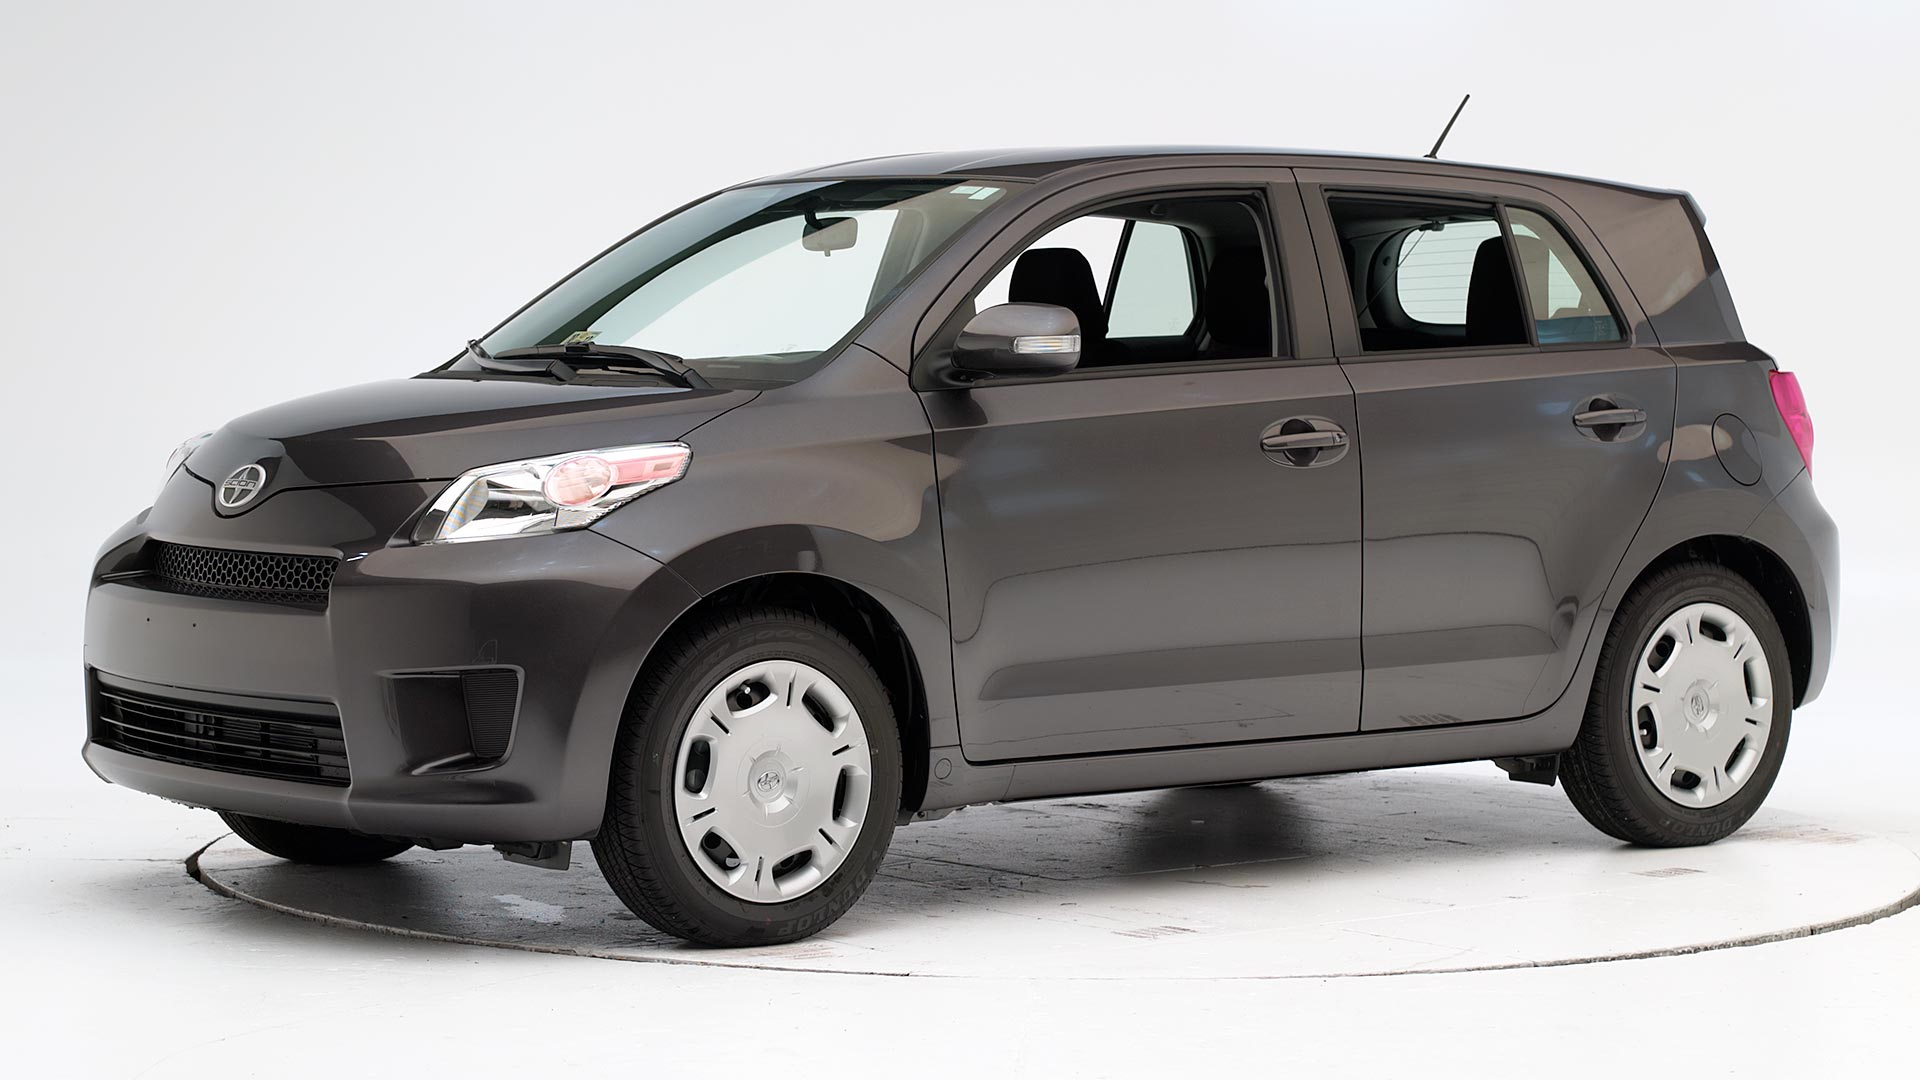 2013 Scion xD 4-door hatchback